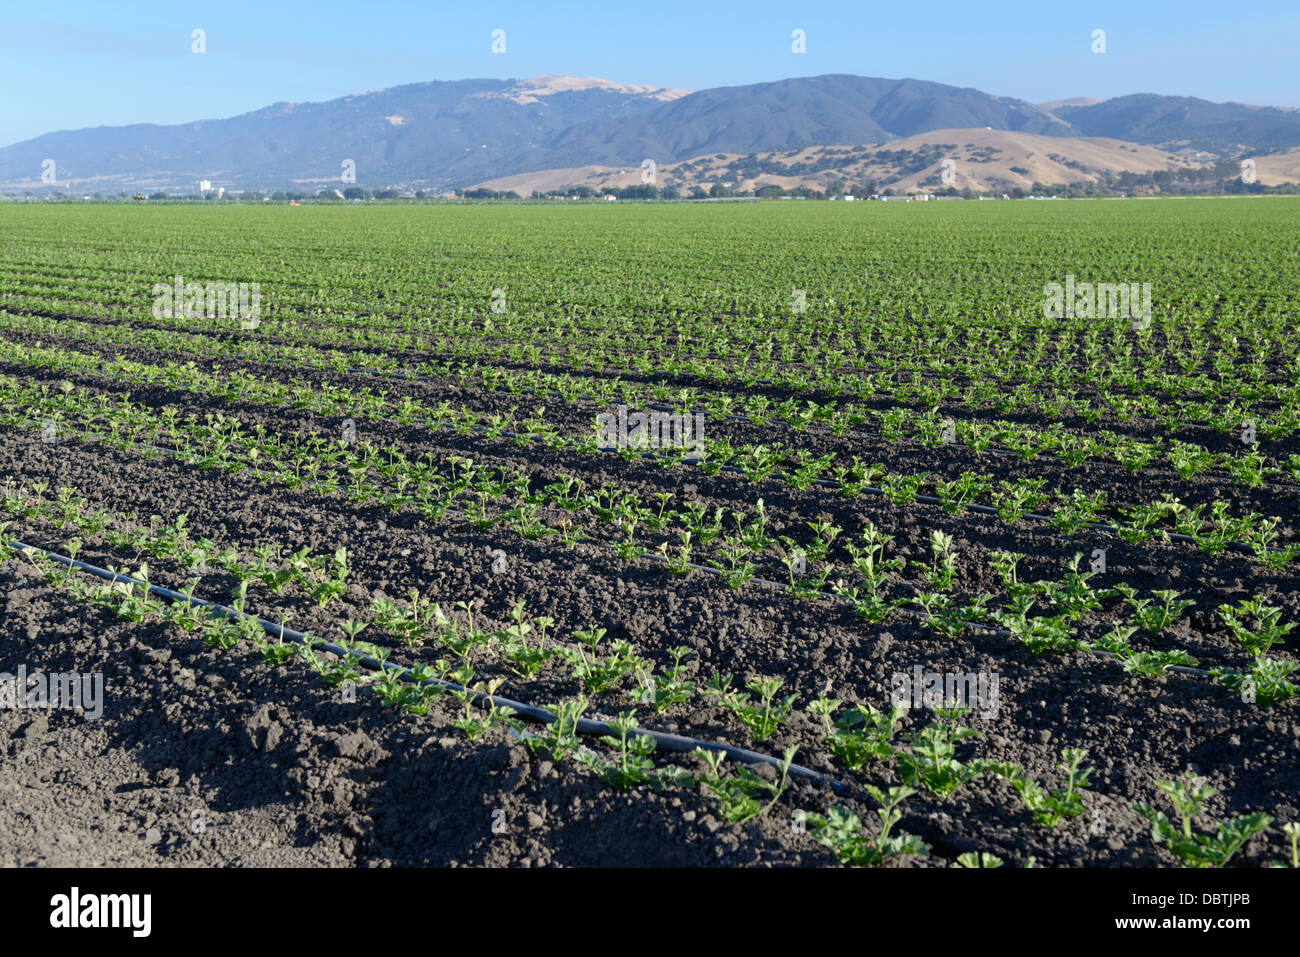 Rows of young sprouting vegetables, Salinas Valley, central CA - Stock Image